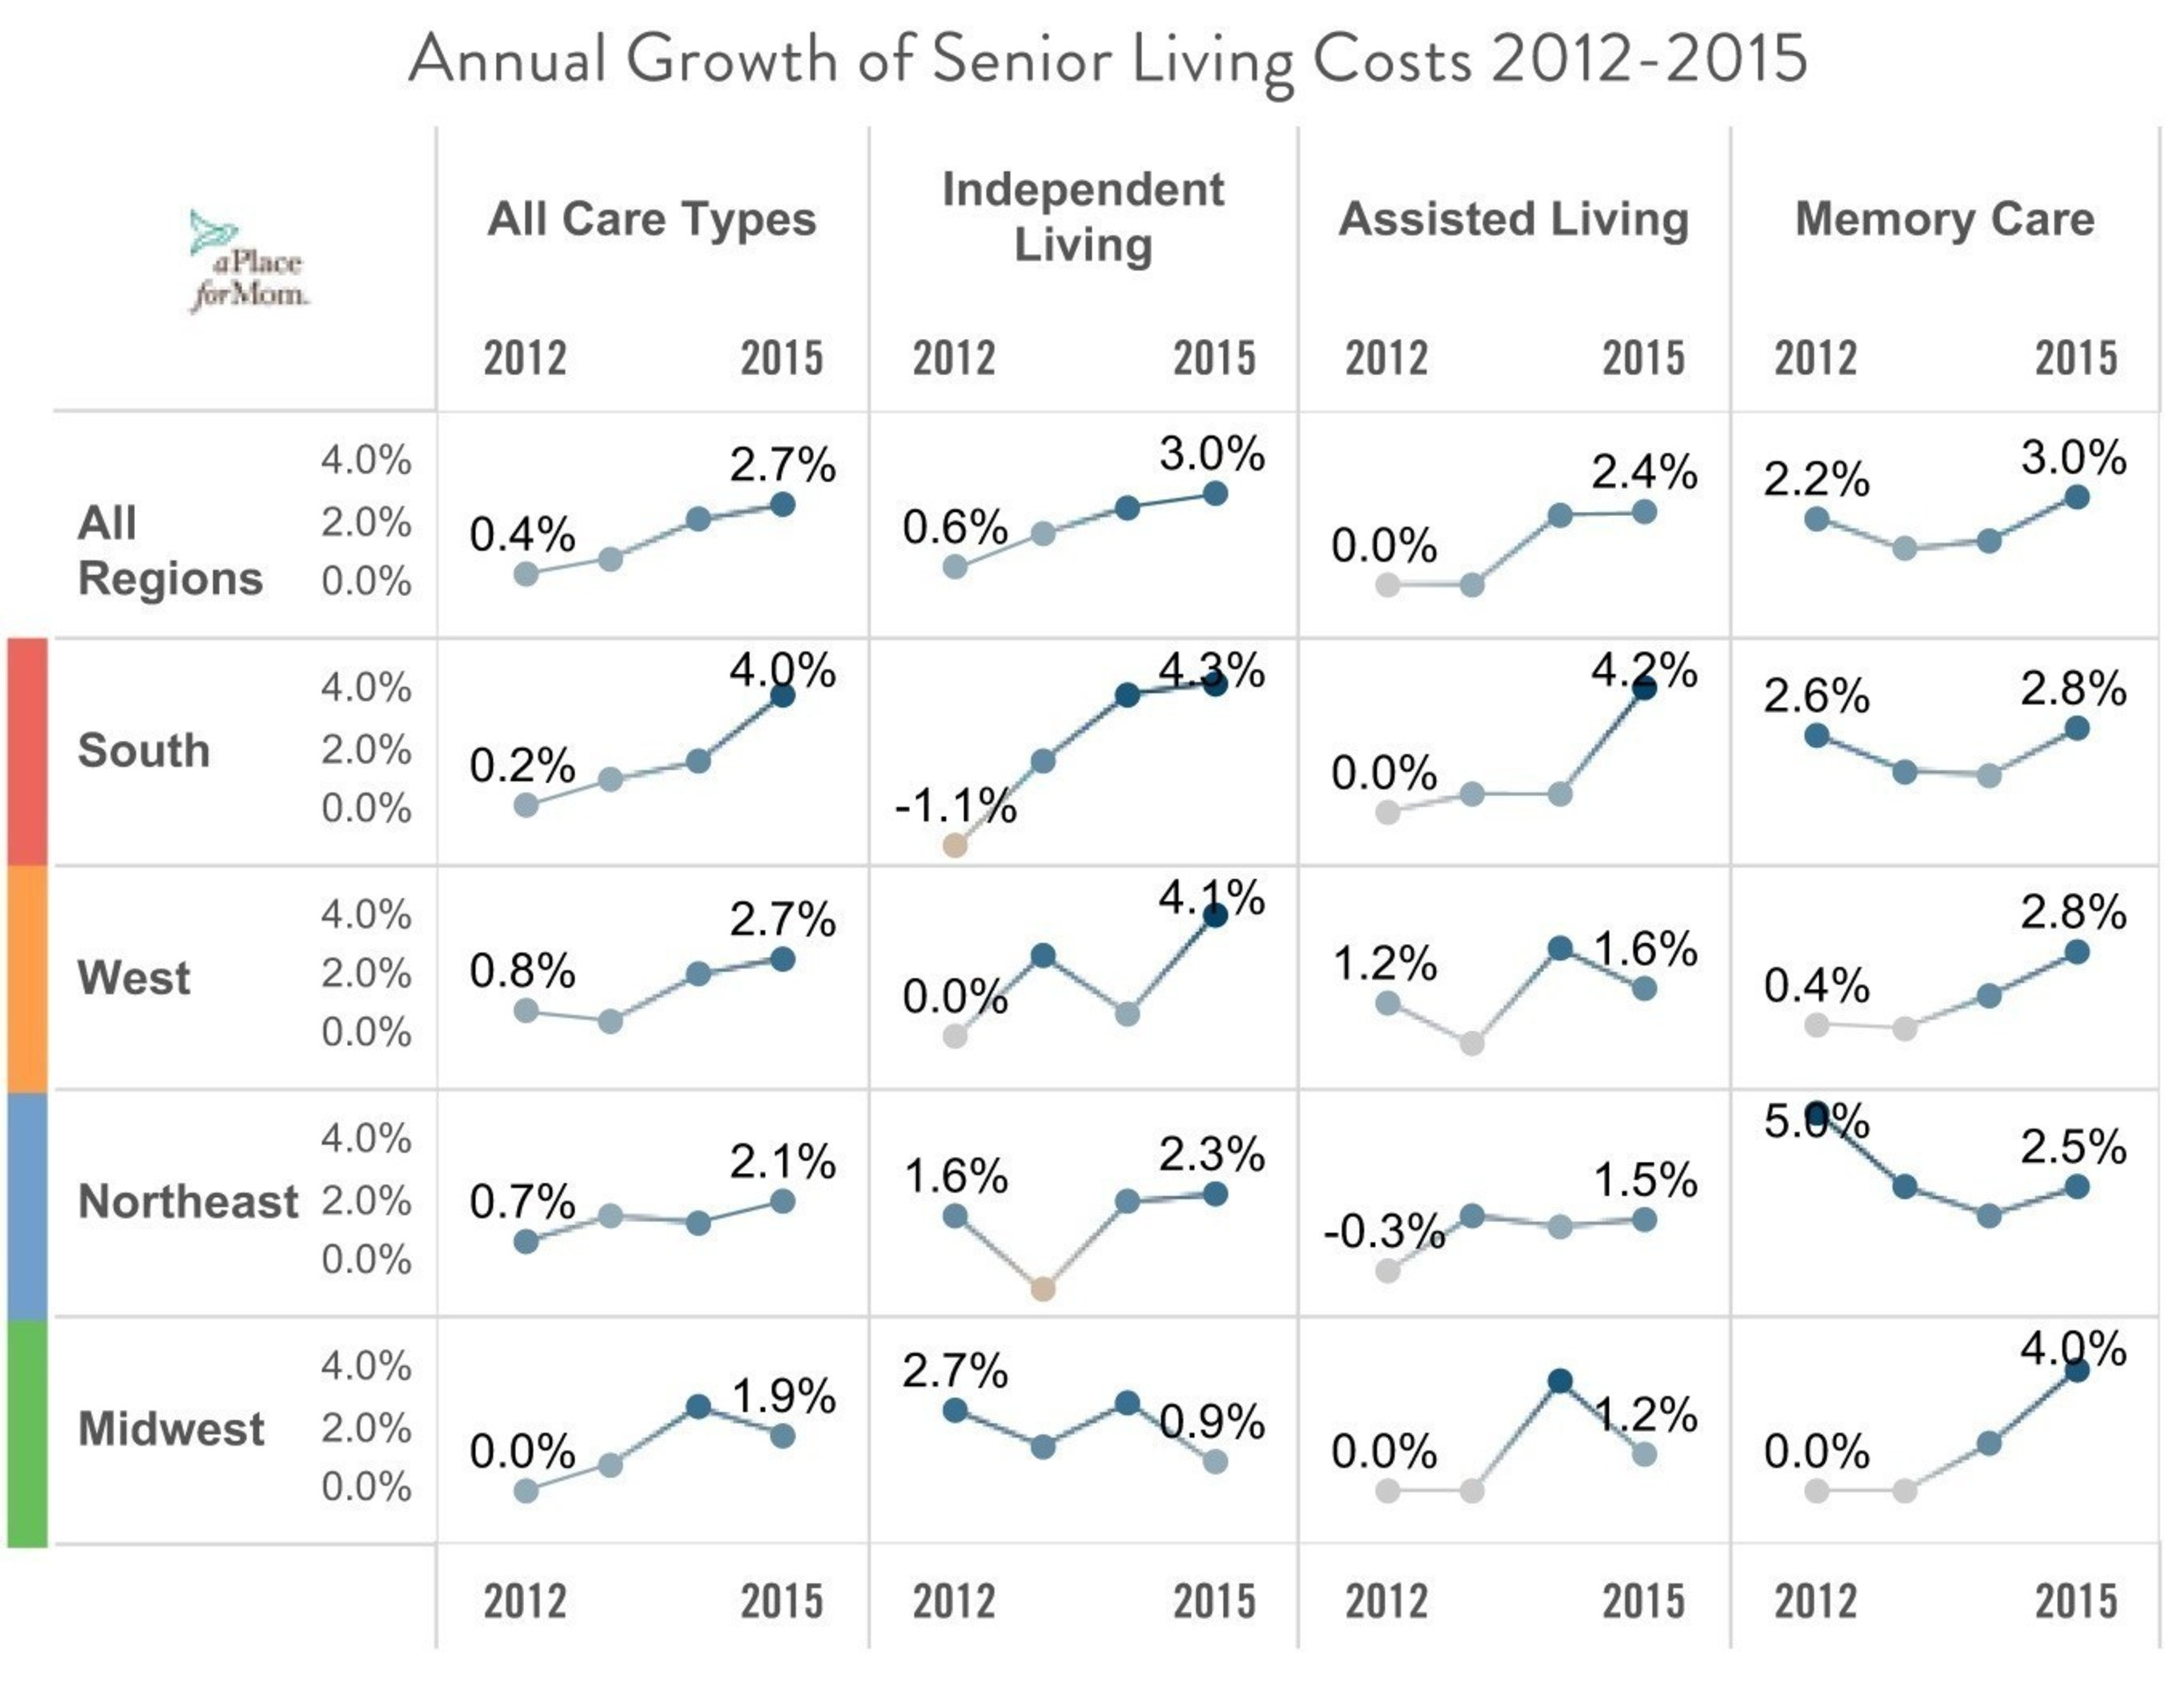 Annual Growth of Senior Living Costs 2012-2015 (Chart 2)